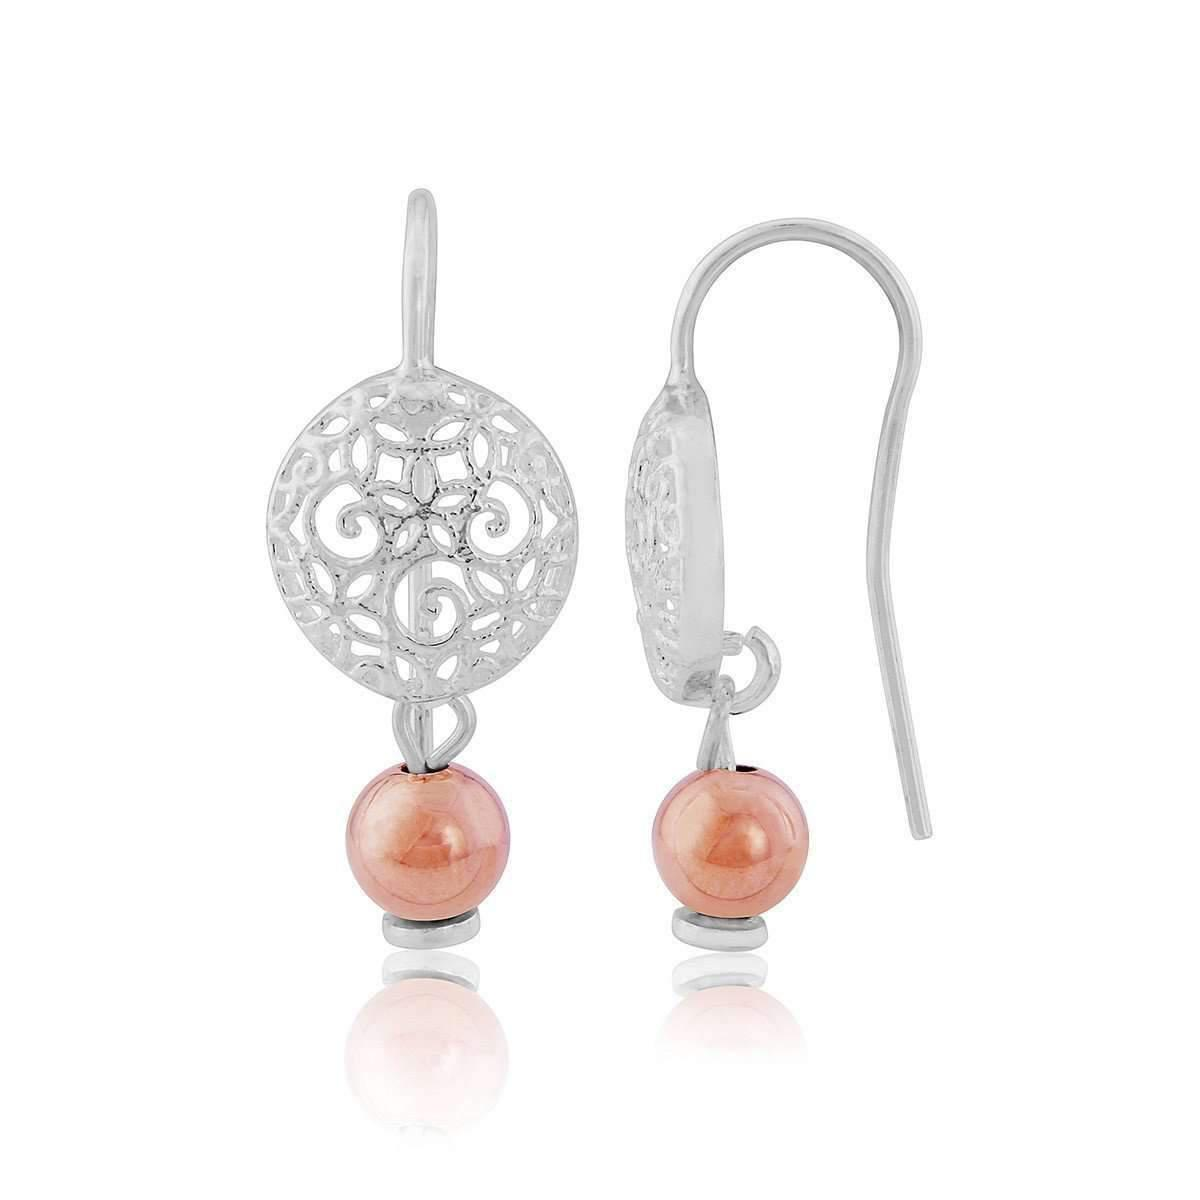 Lavan Sterling Silver & Rose Gold Teardrop Filigree Earrings GwolrWq